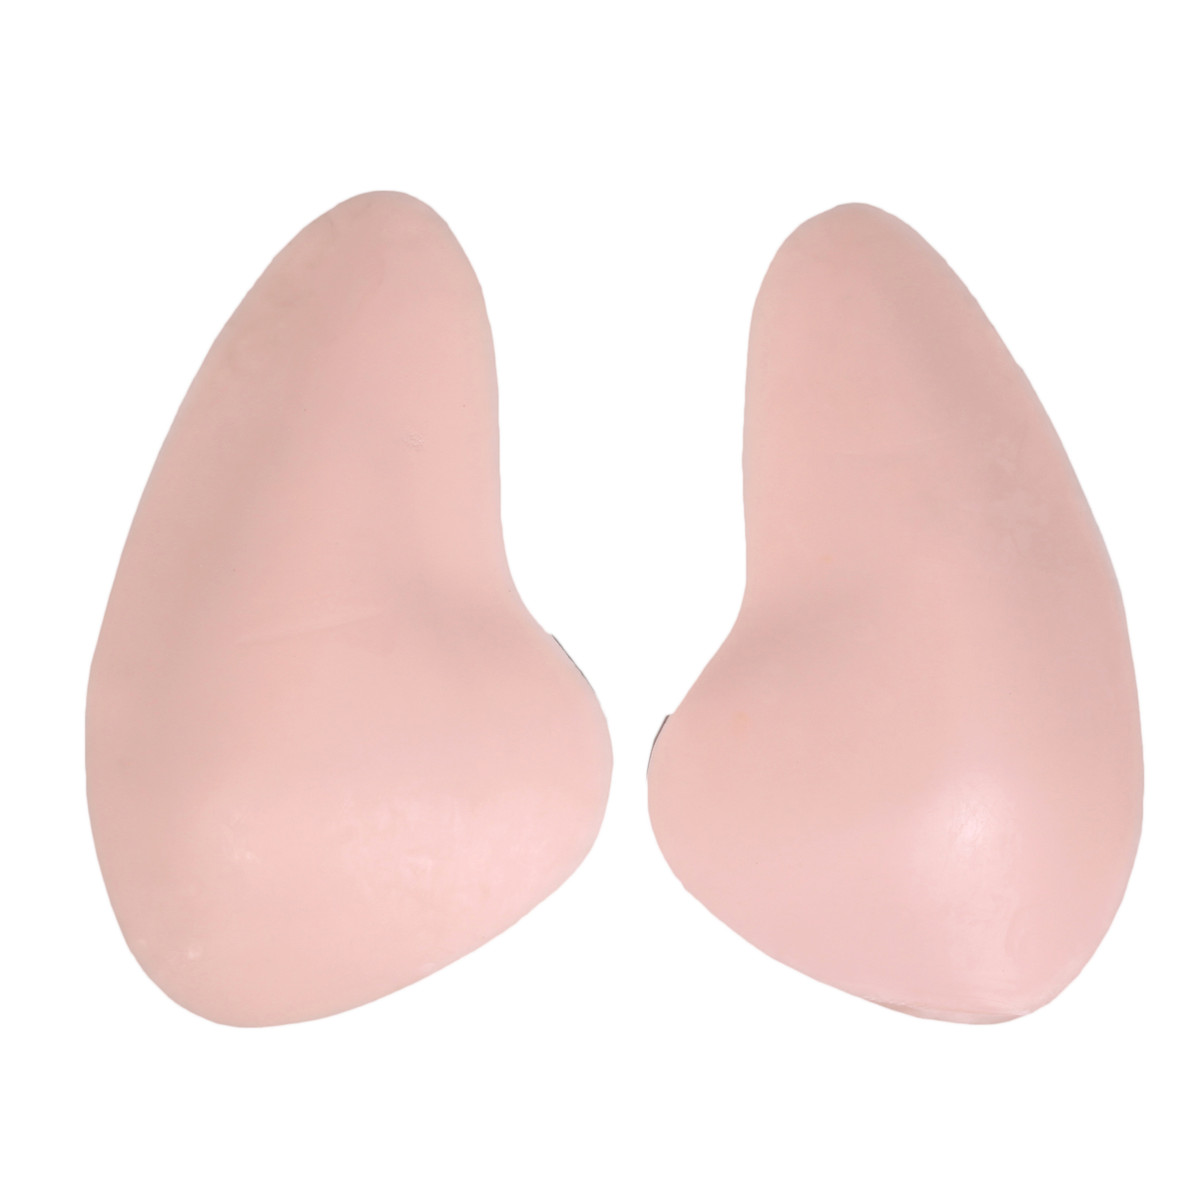 Silicone Hip Enhancer